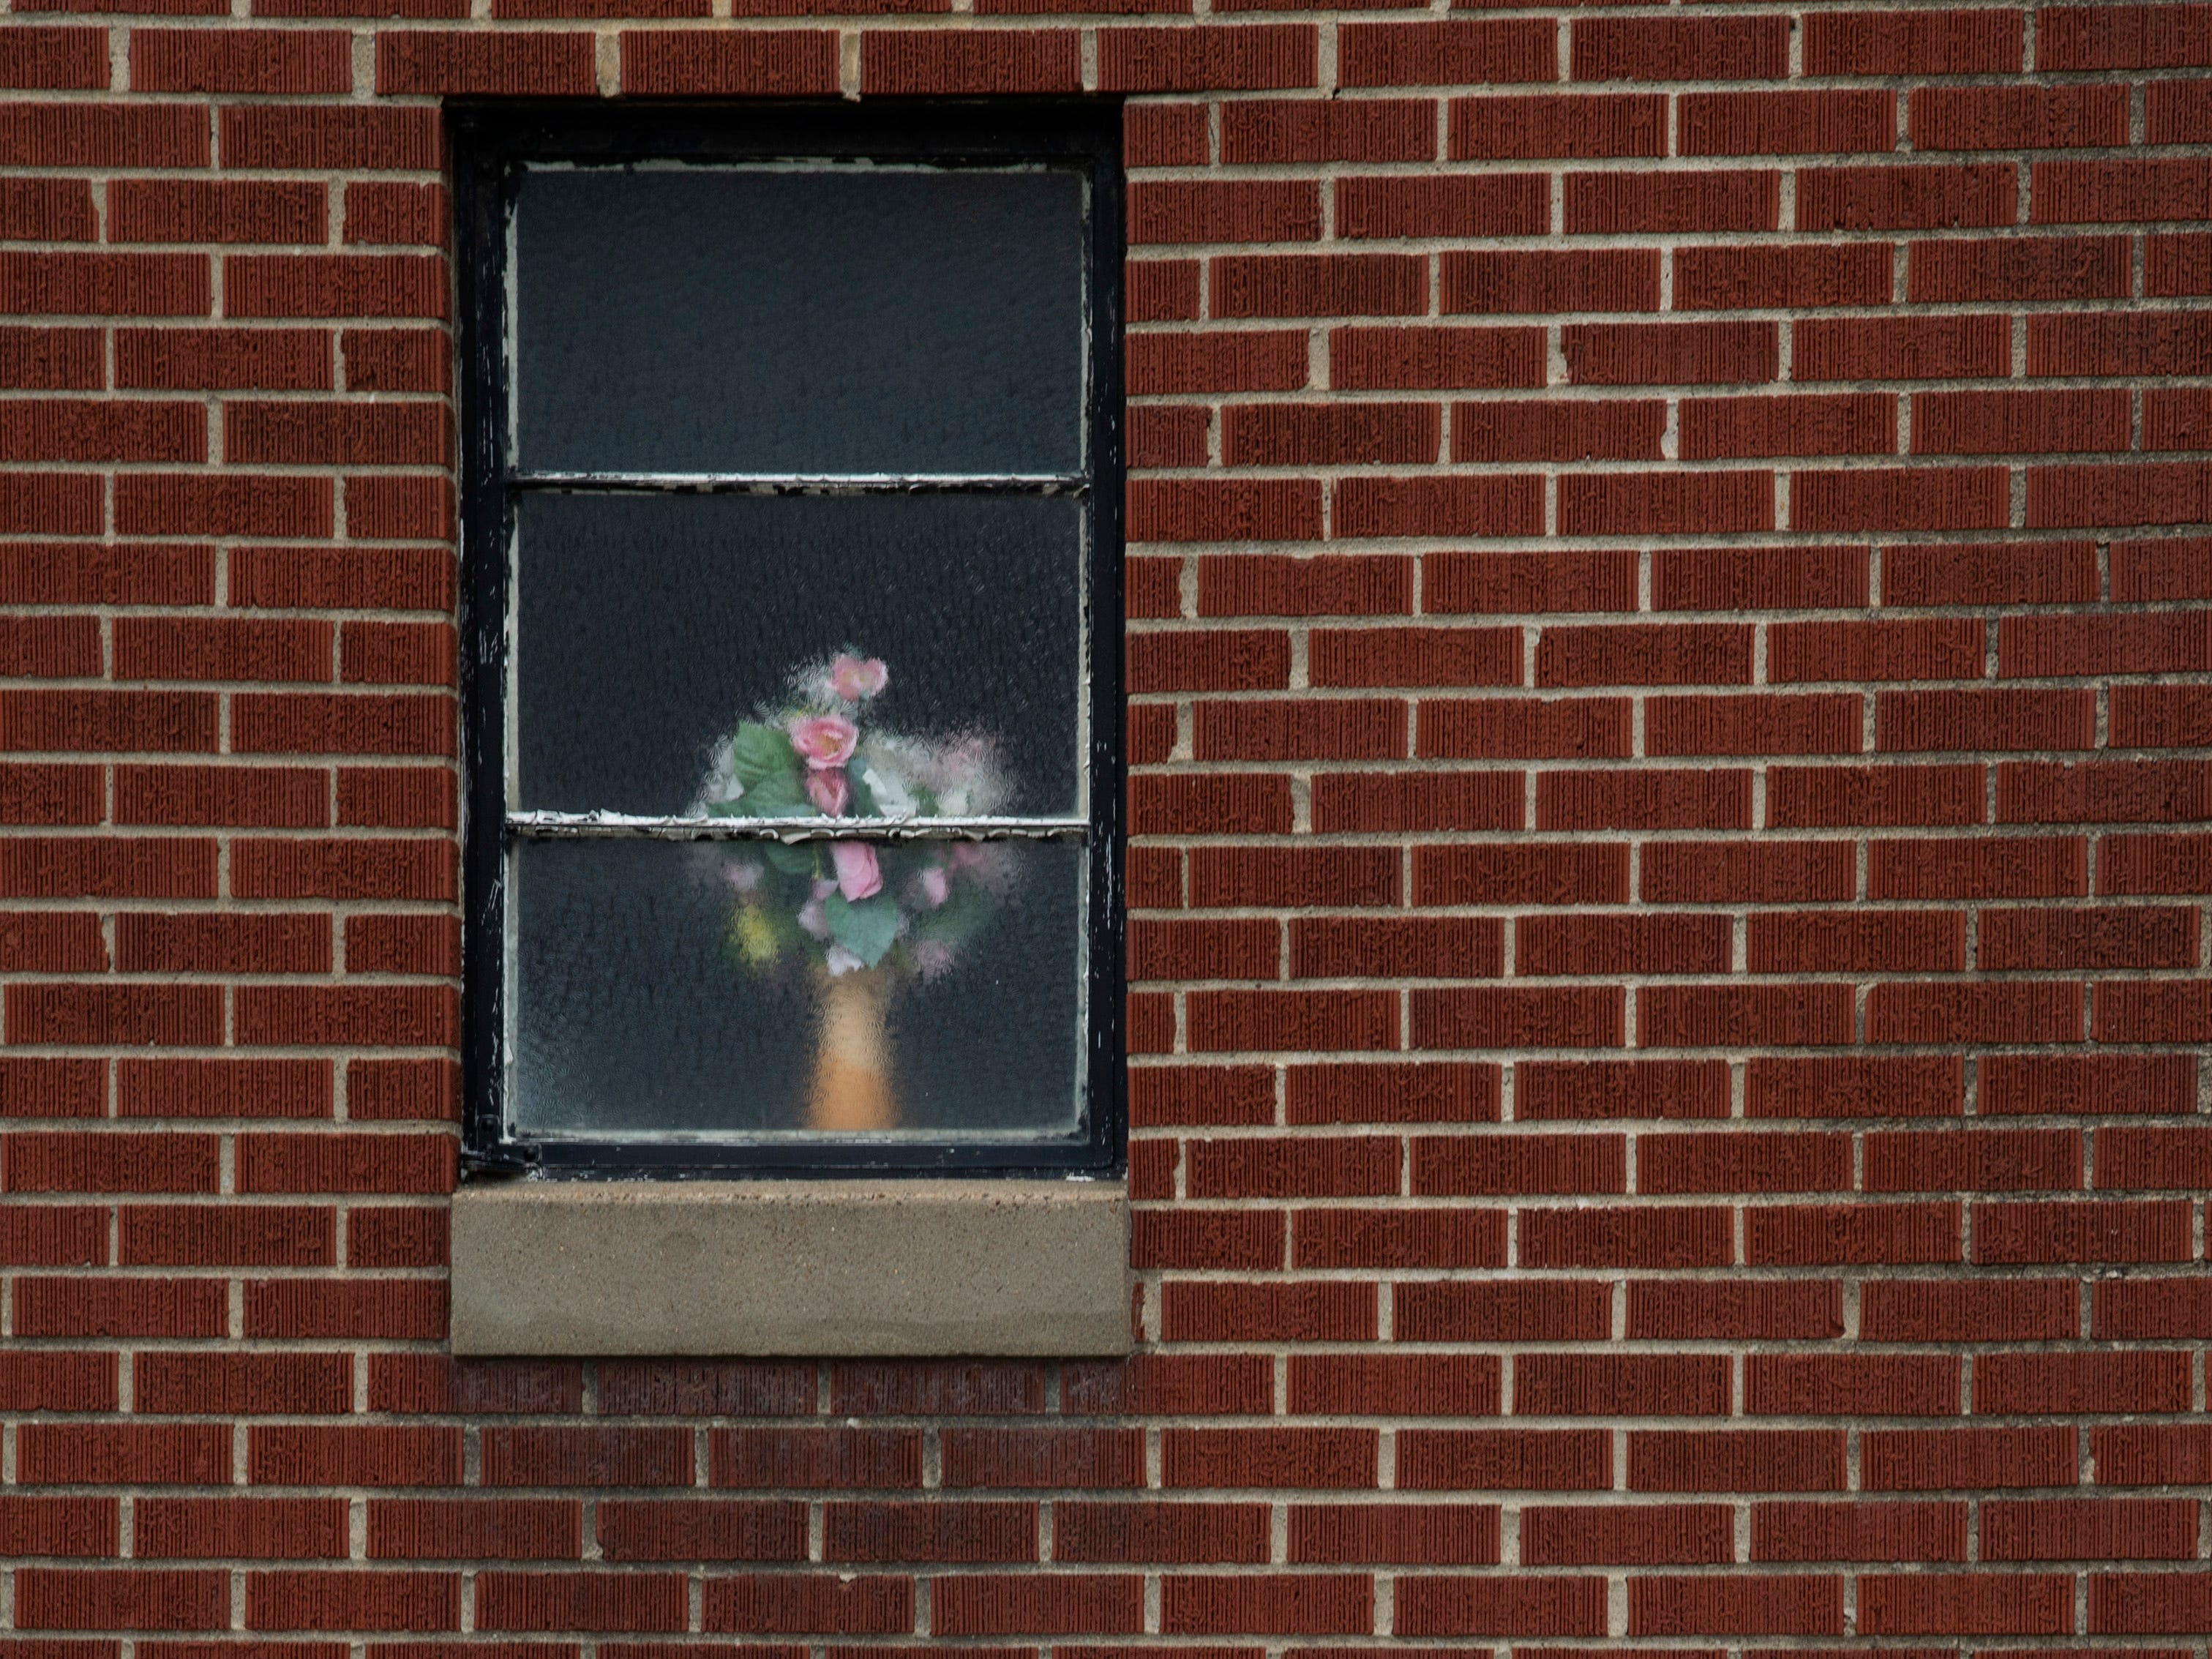 Flowers adorn the window of Independence Missionary Baptist Church on Virginia Street Wednesday afternoon. The church was built in 1884.